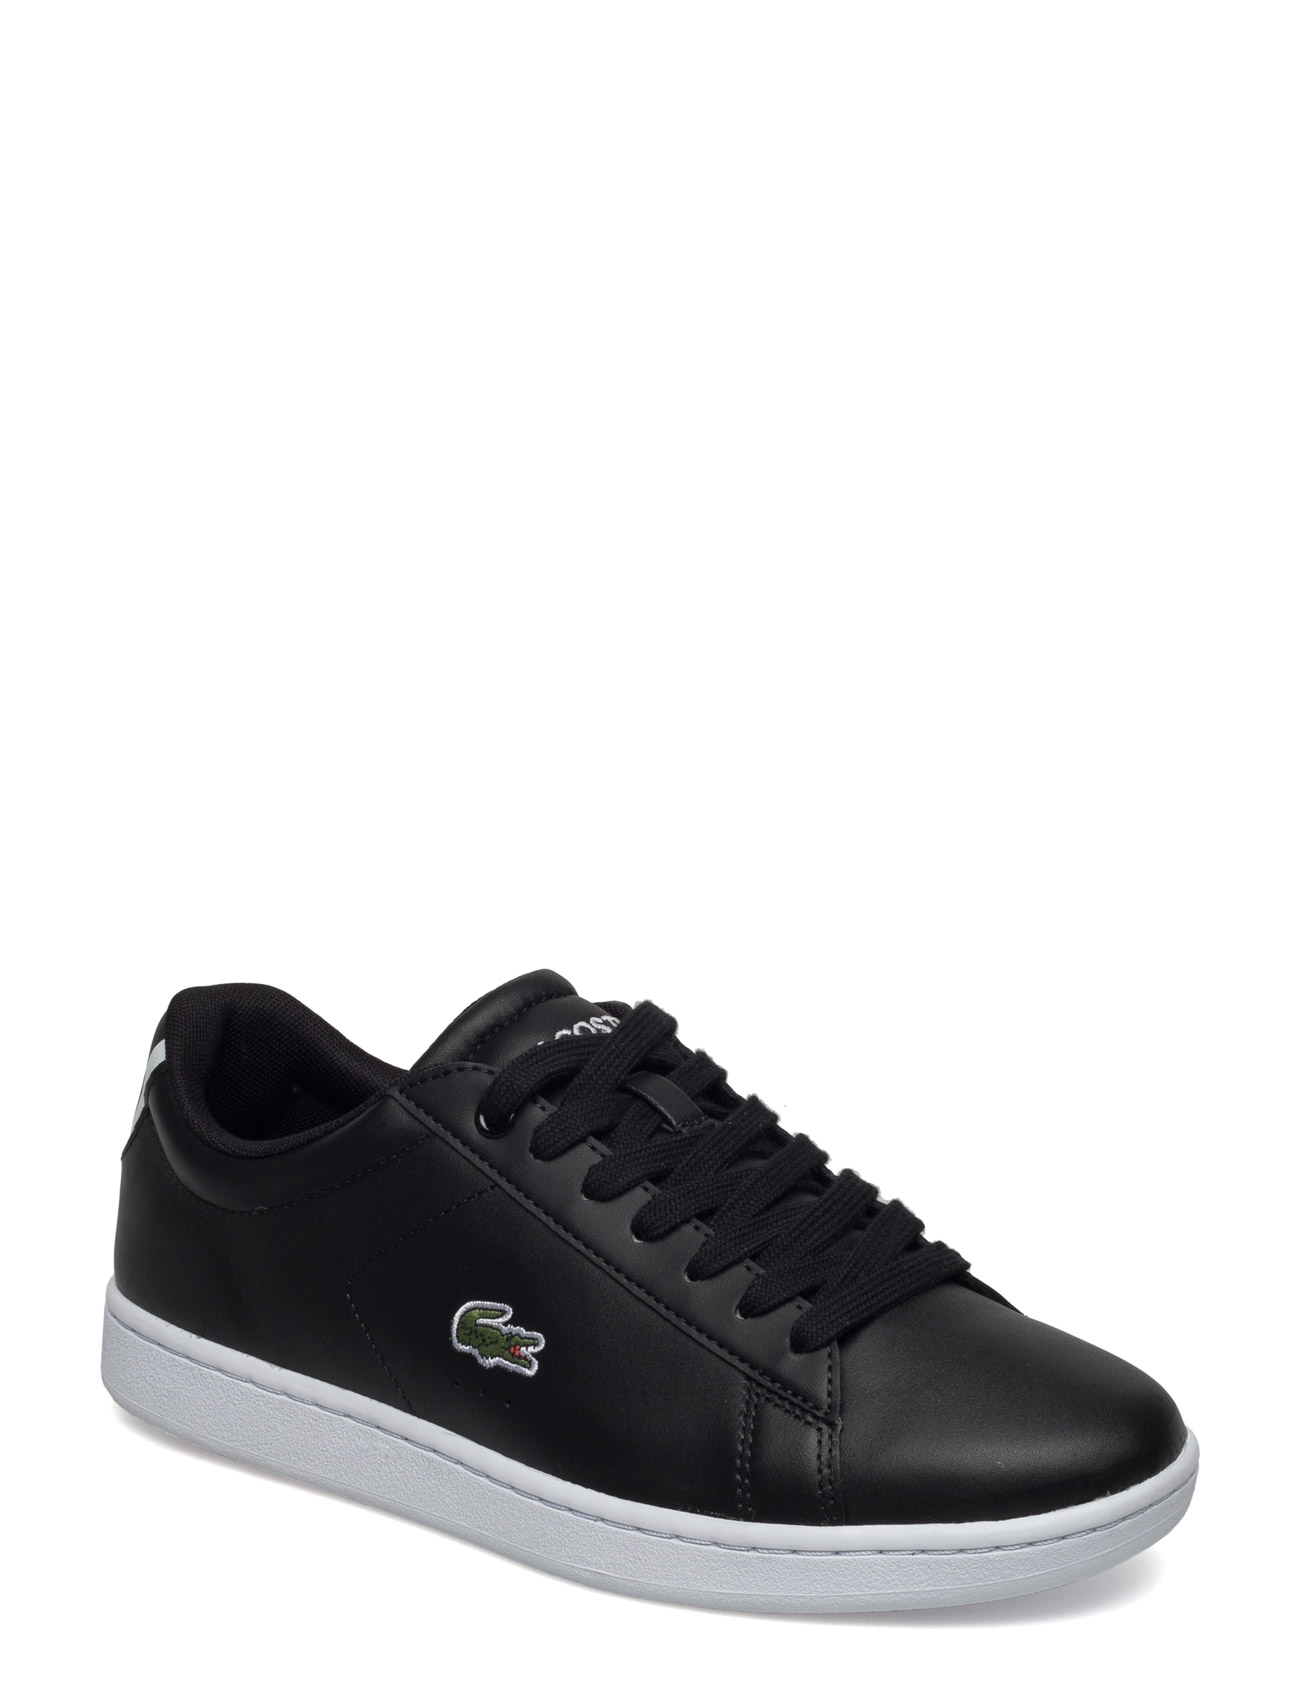 0580c7f015ec Carnaby Evo Bl 1 Lacoste Shoes Sneakers til Damer i Sort ...